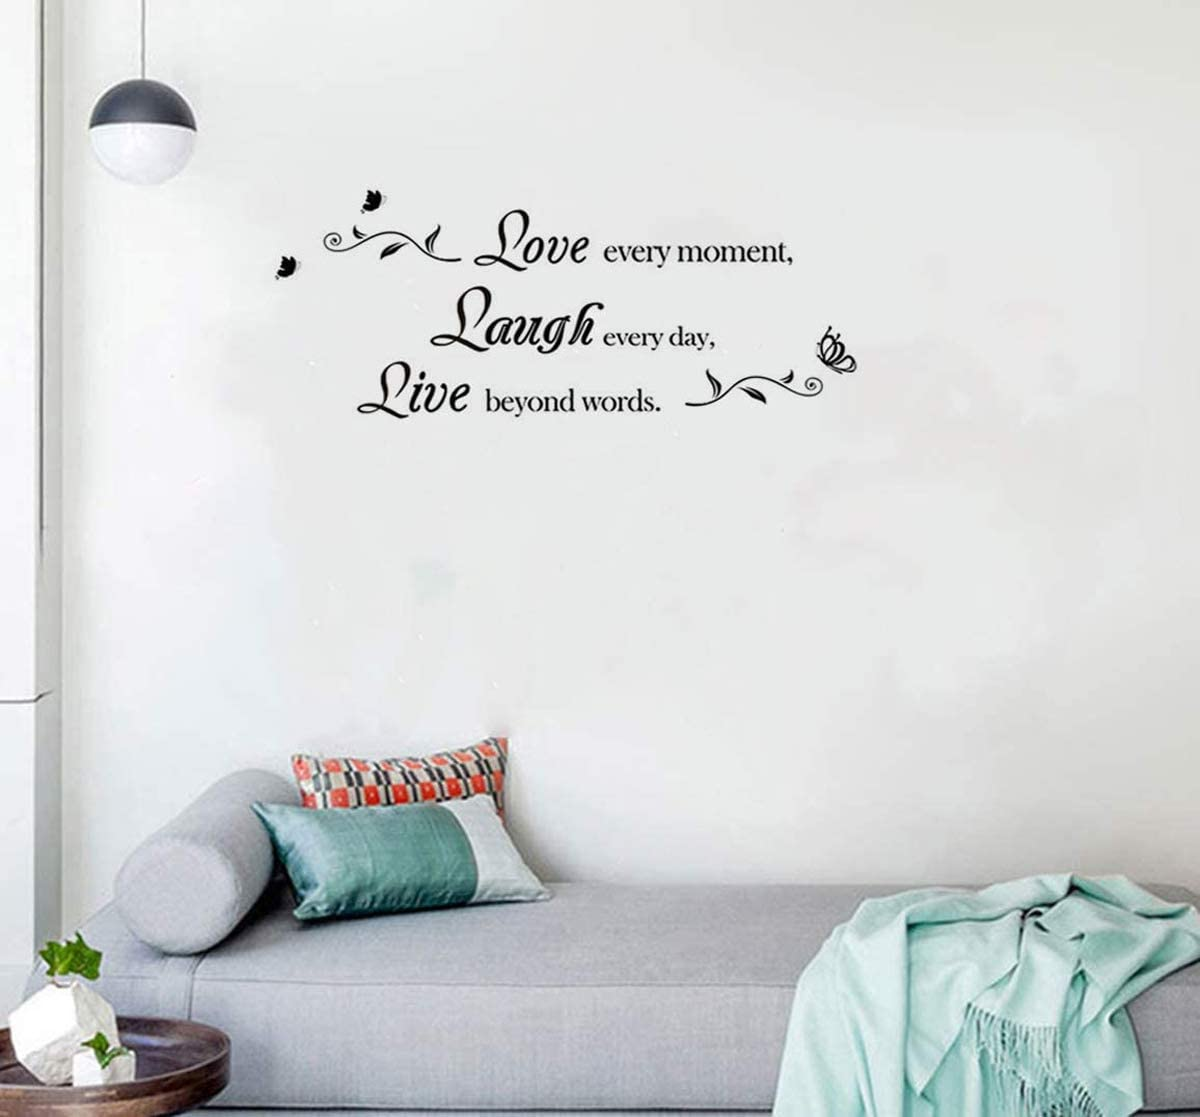 Laugh Every Day Live Beyond Words Wall Decal Removable Sticker Bathroom Home Decor Love Every Moment